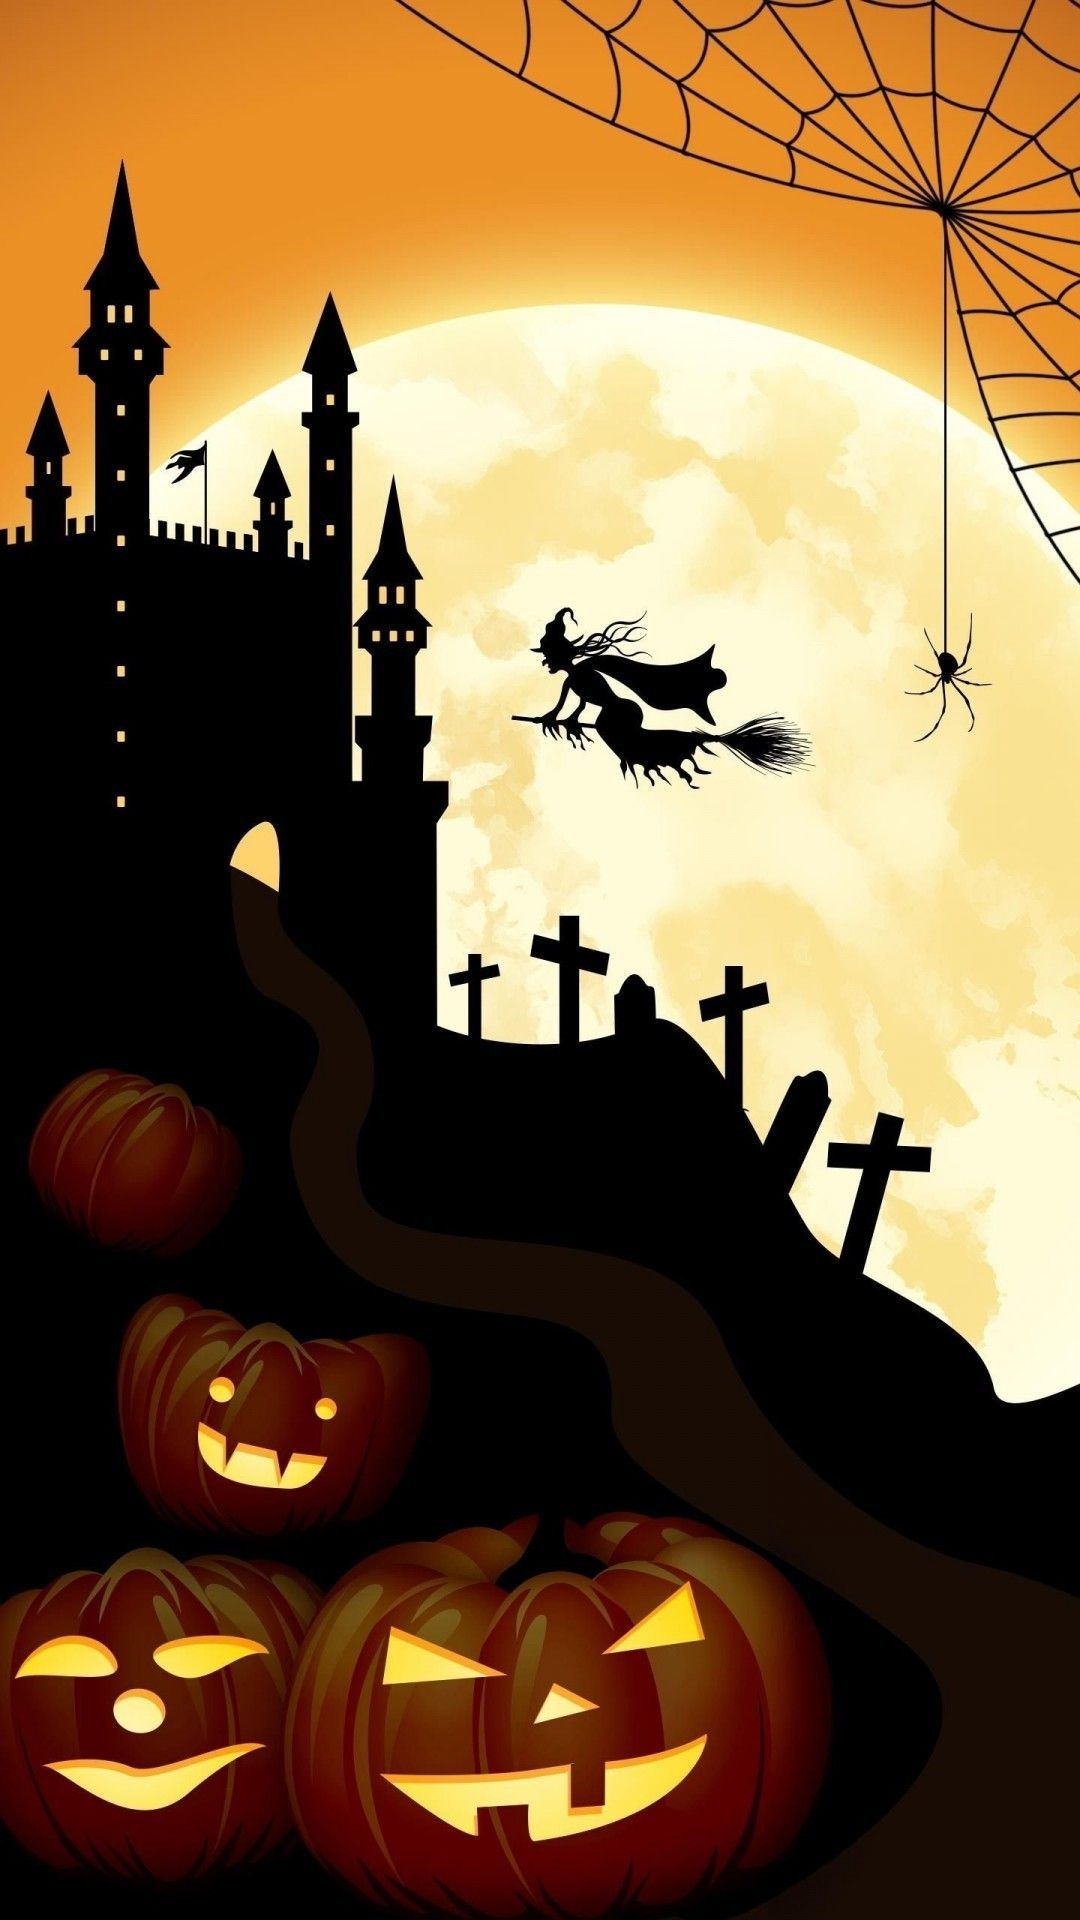 Halloween Wallpapers High Definition Hupages Download Iphone Wallpapers With Images Free Halloween Wallpaper Halloween Wallpaper Iphone Wallpaper Travel